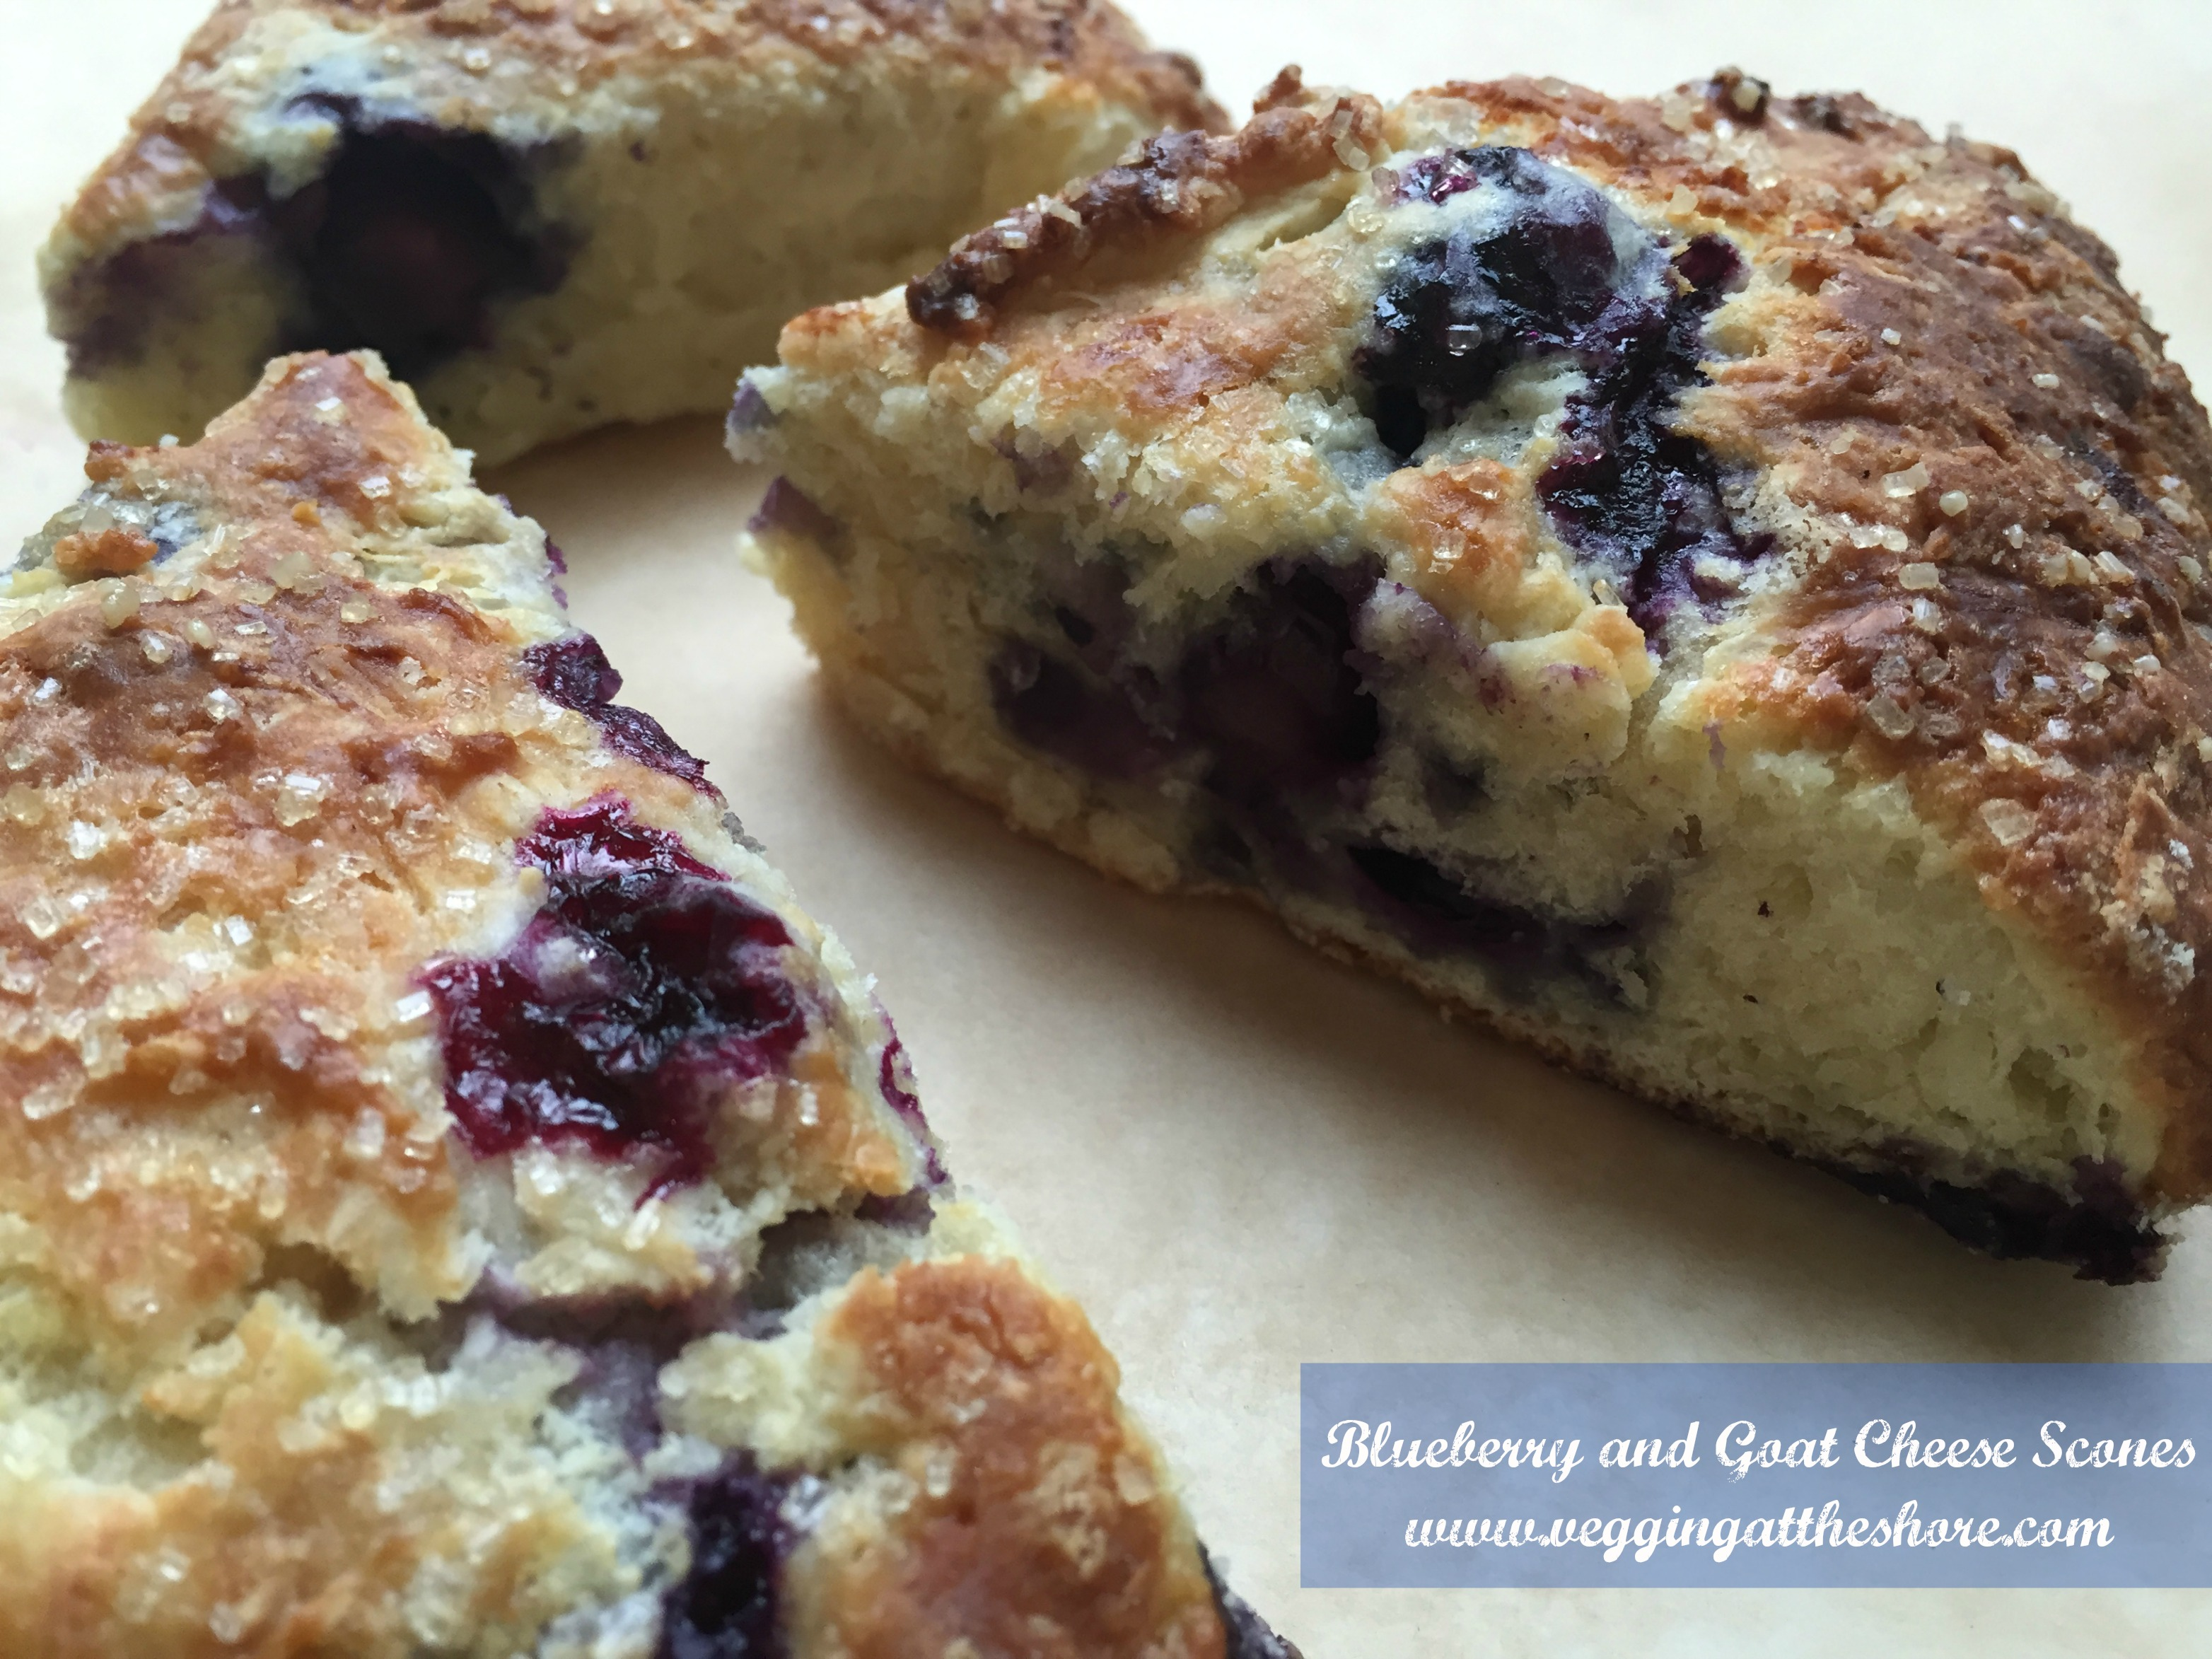 Blueberry and Goat Cheese Scones